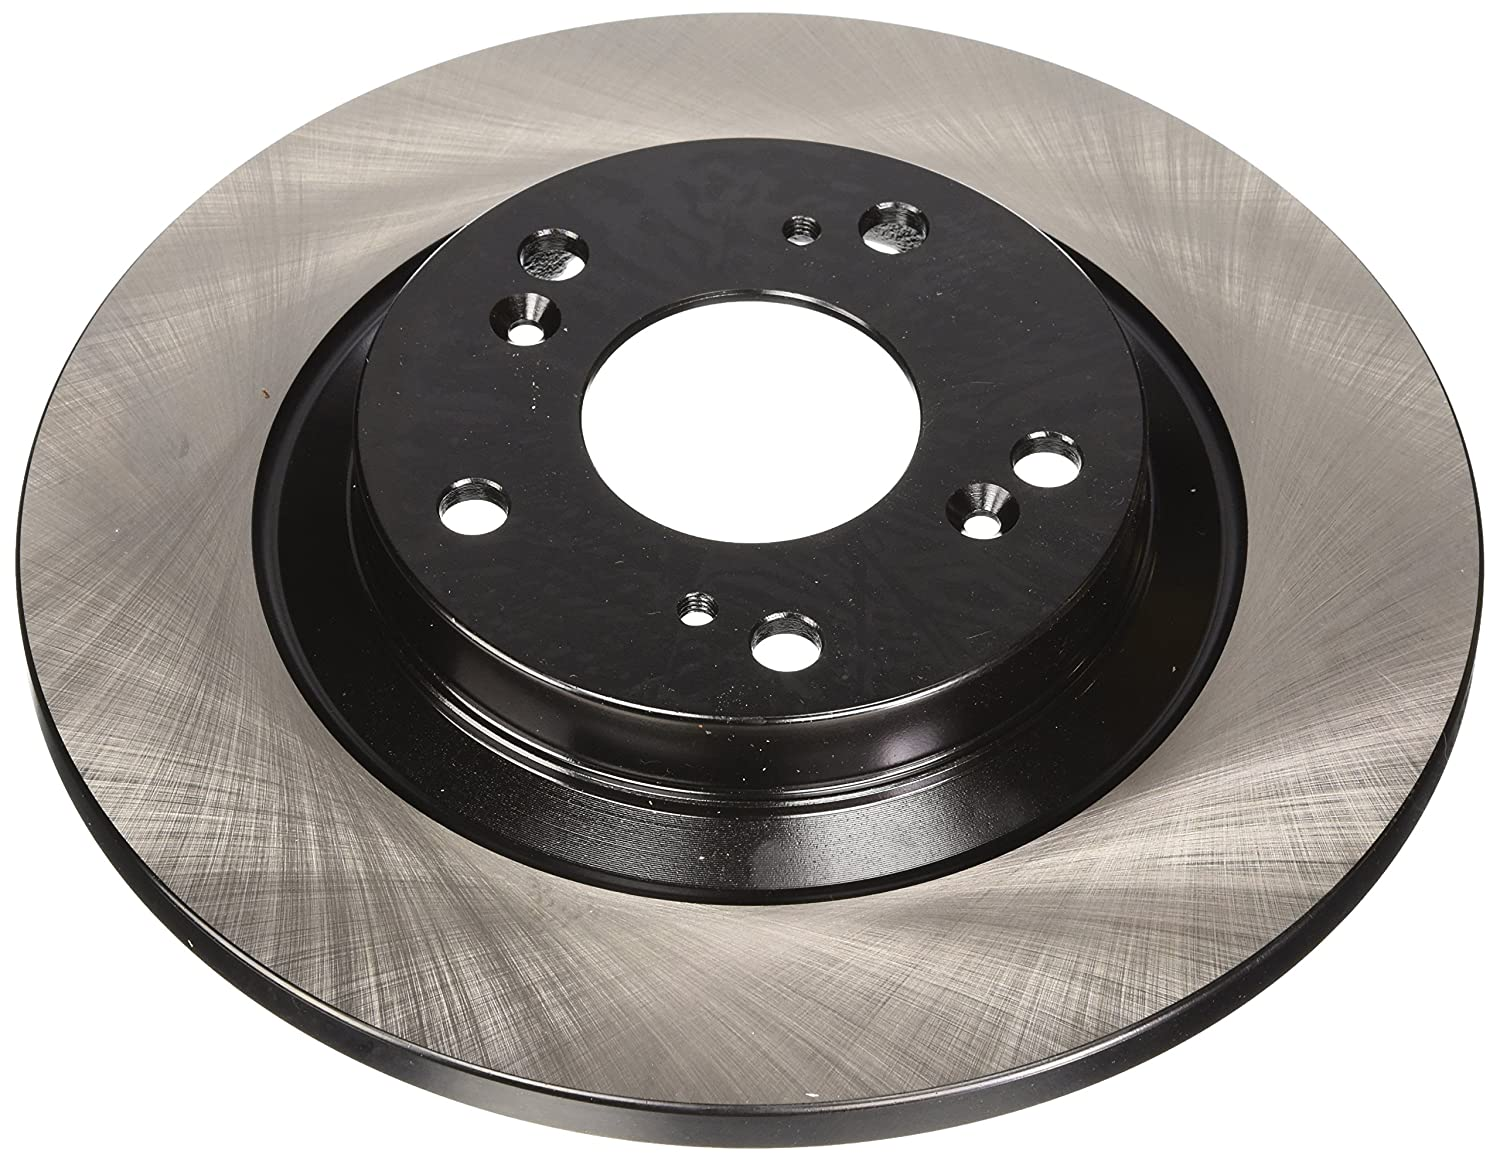 Centric Parts 120.40050 Premium Brake Rotor with E-Coating